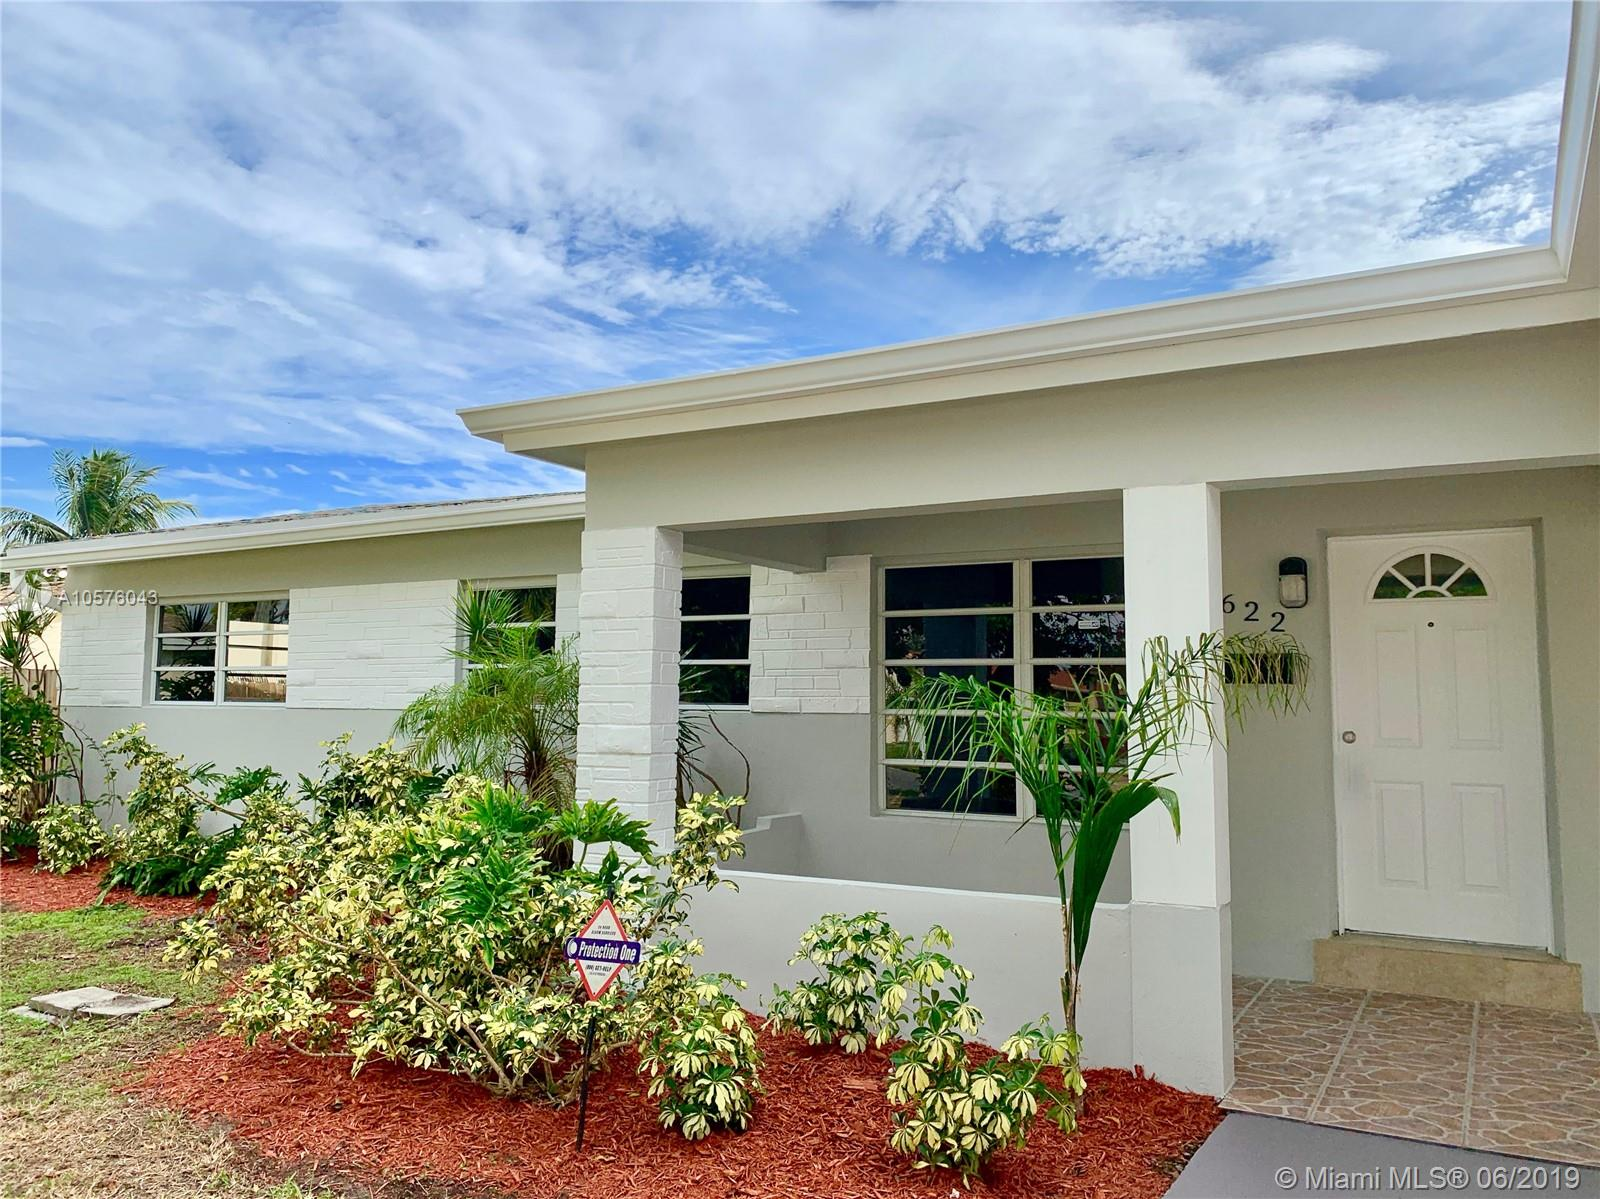 2622 Plunkett St, Hollywood, Florida